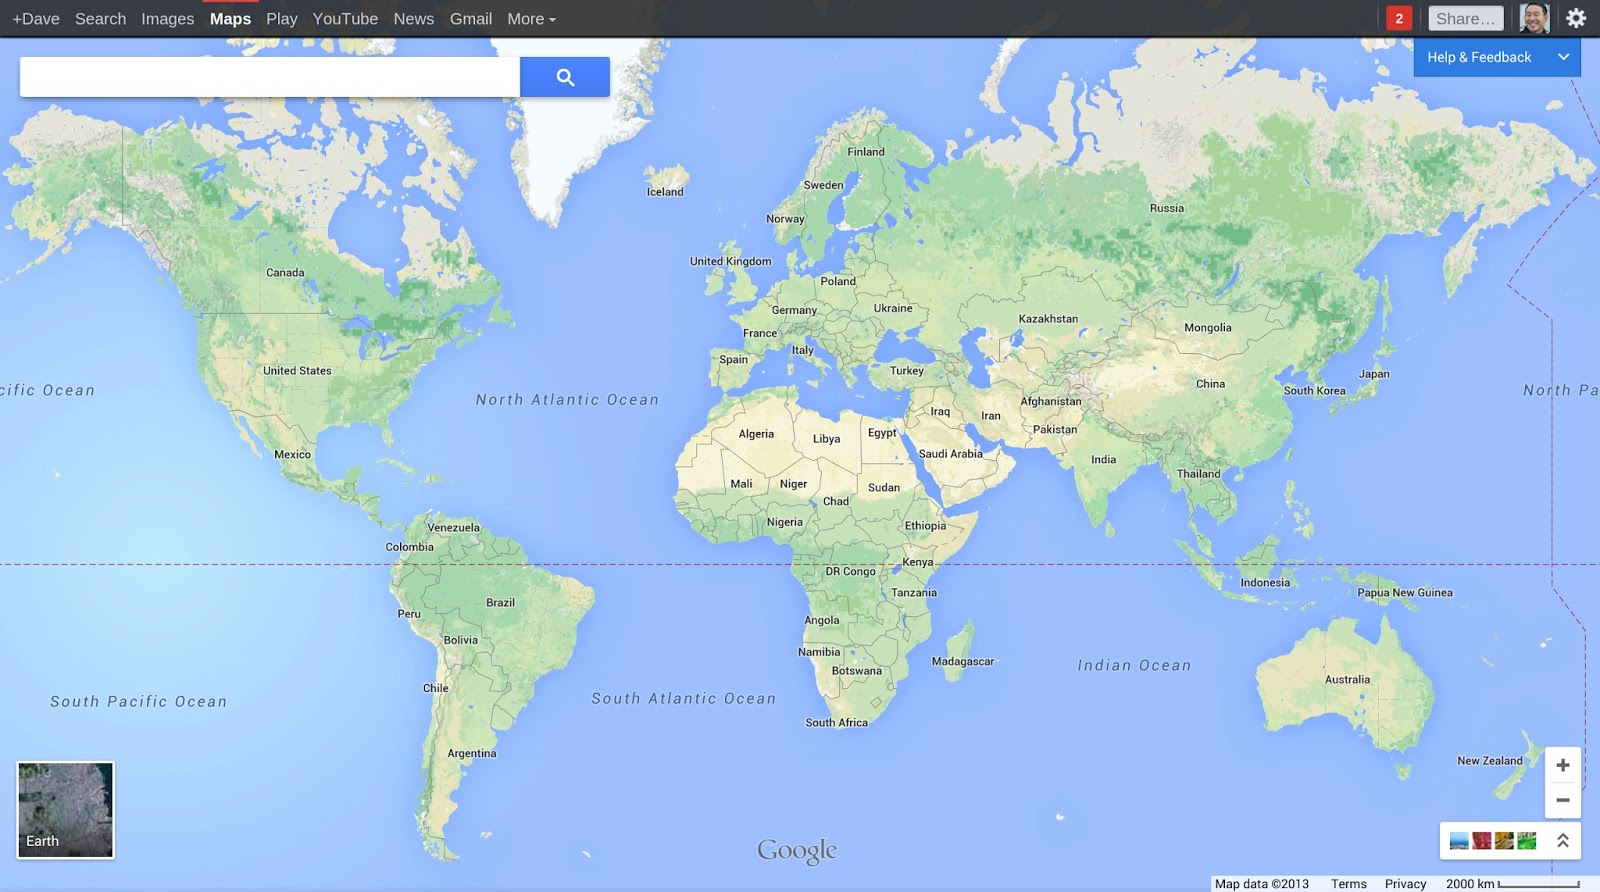 Google Maps overhaul showing entire world (2013)